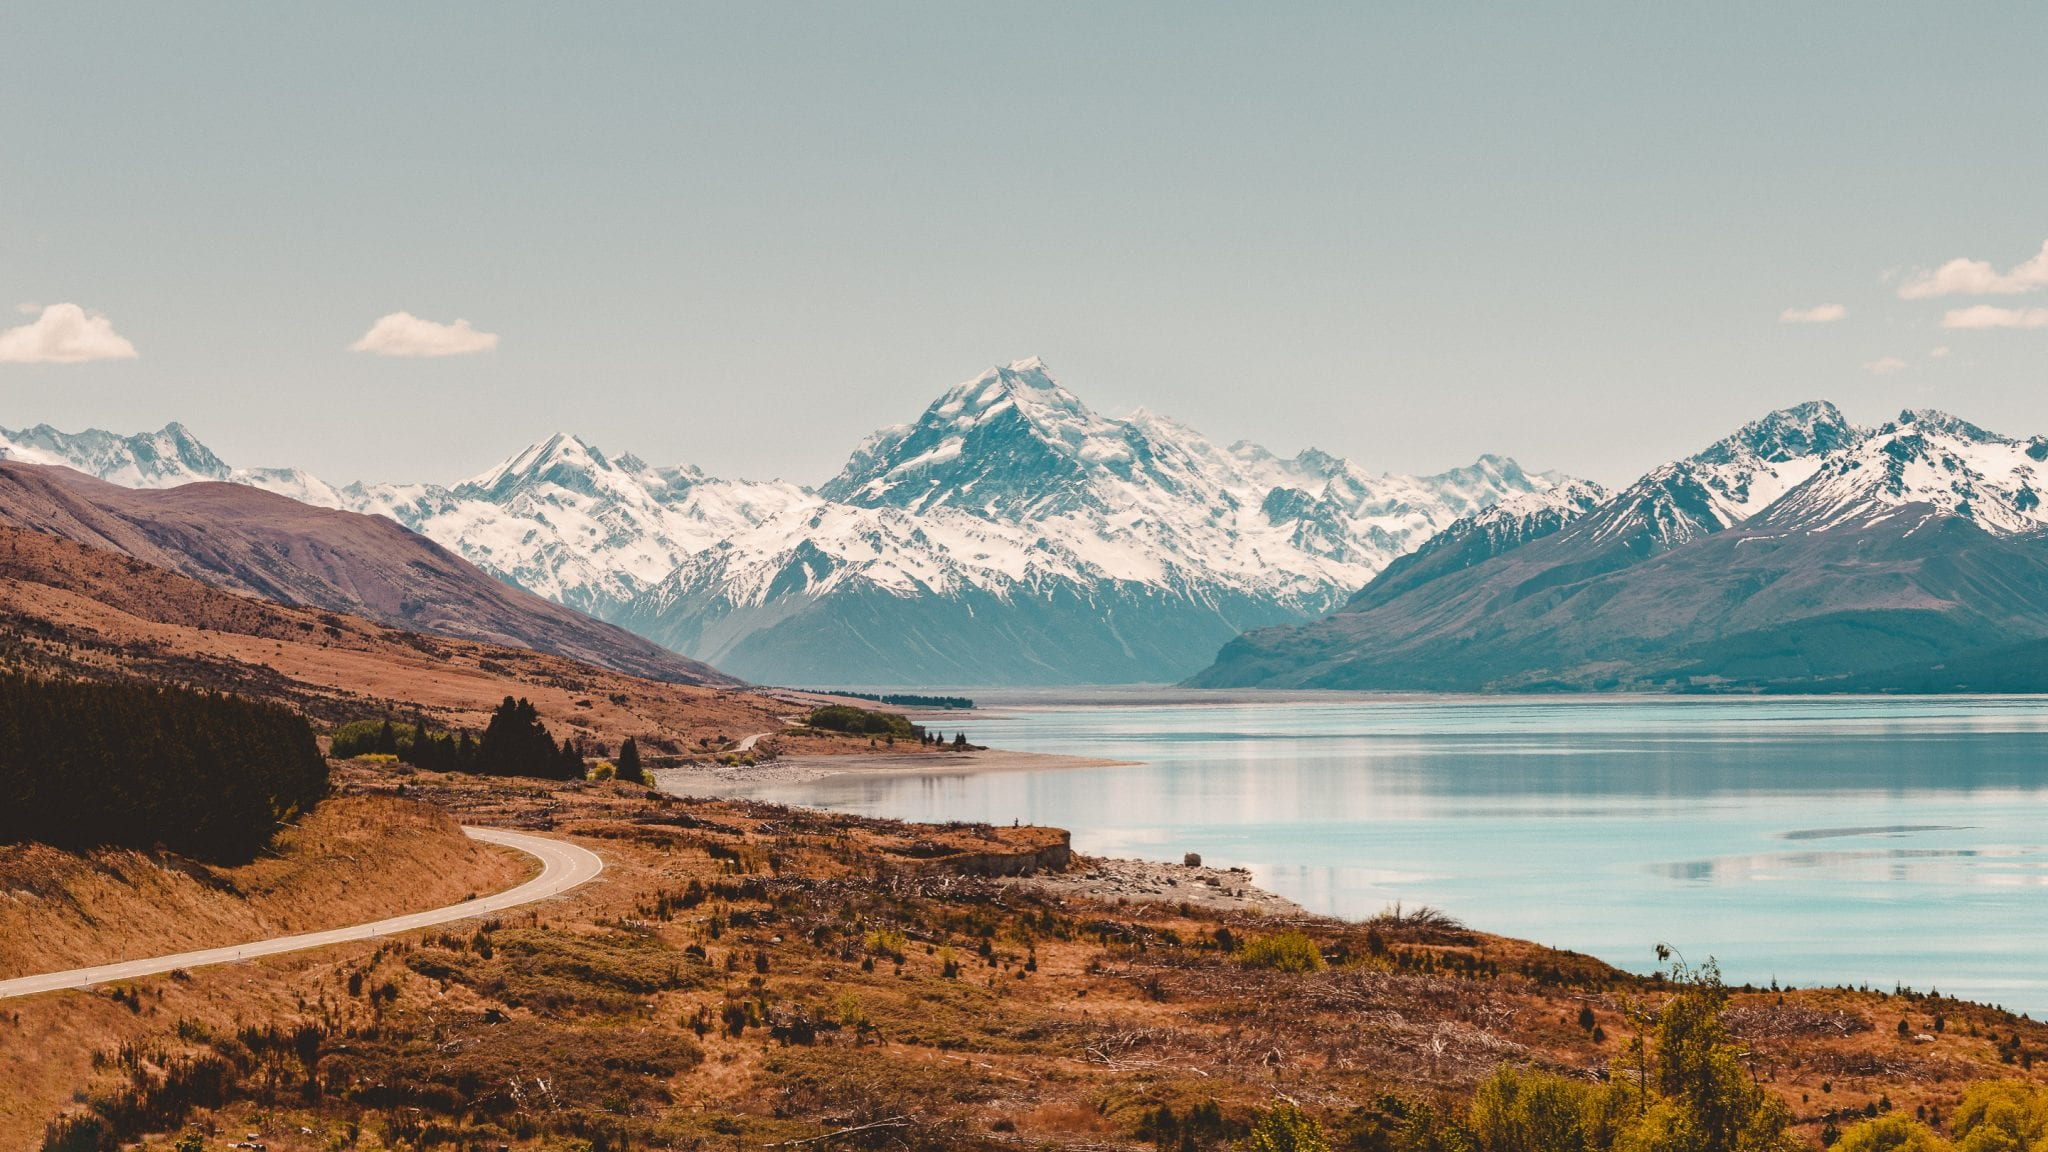 aoraki mount cook and hooker valley from Peters lookout along lake pukaki